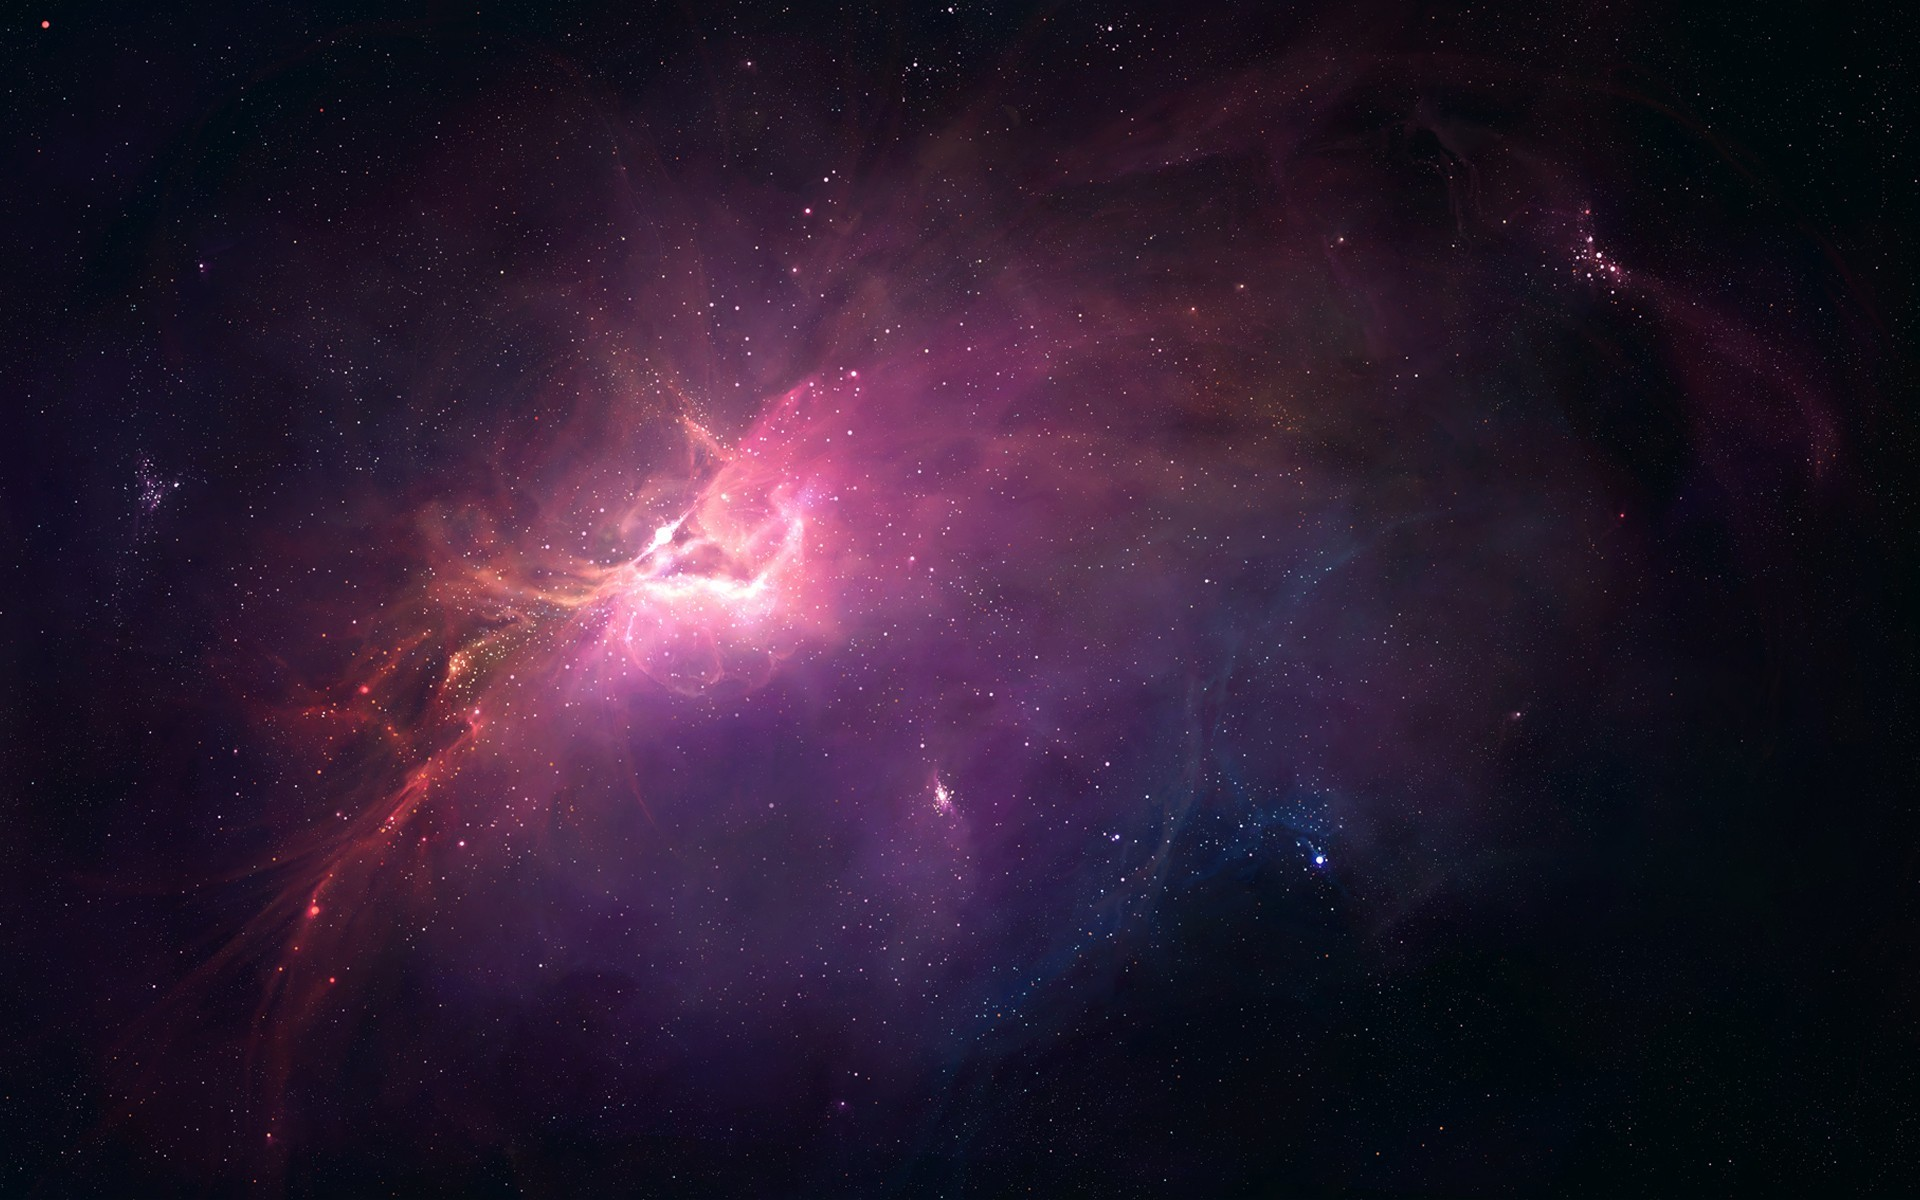 Outer Space Nebula Wallpaper images 1920x1200